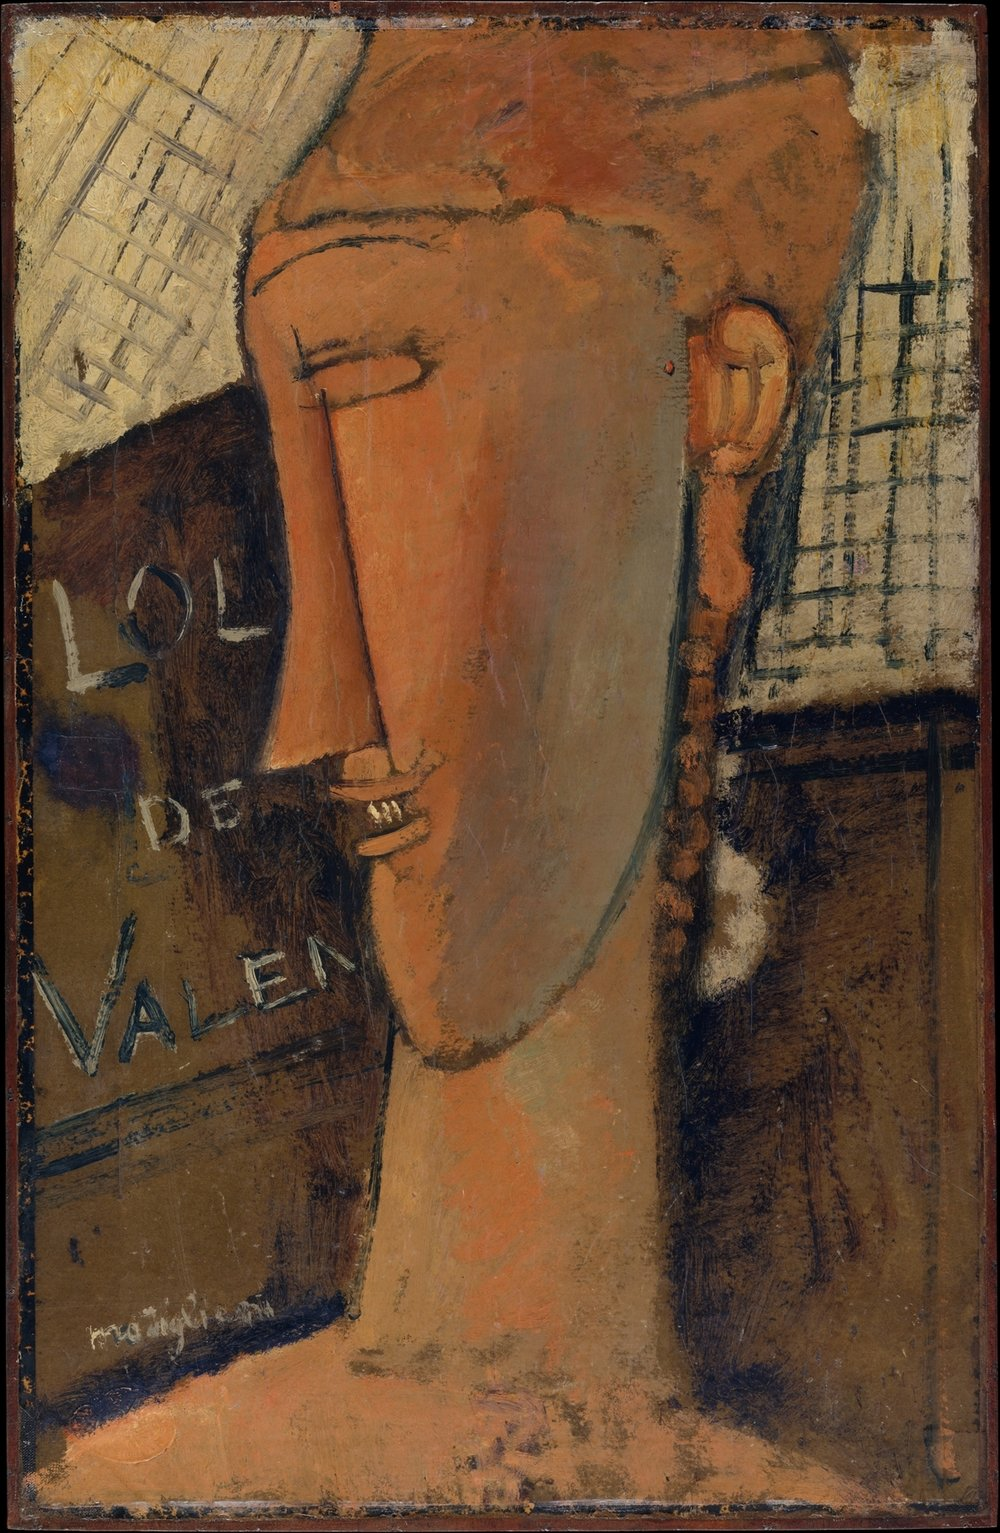 'Lola de Valence' Amedeo Modigliani (Italian, Livorno 1884–1920 Paris), Lola de Valence, 1915, Oil on Paper, Mounted on Wood  | ©   The Met Museum     |   Creative Commons Licence CC0 1.0